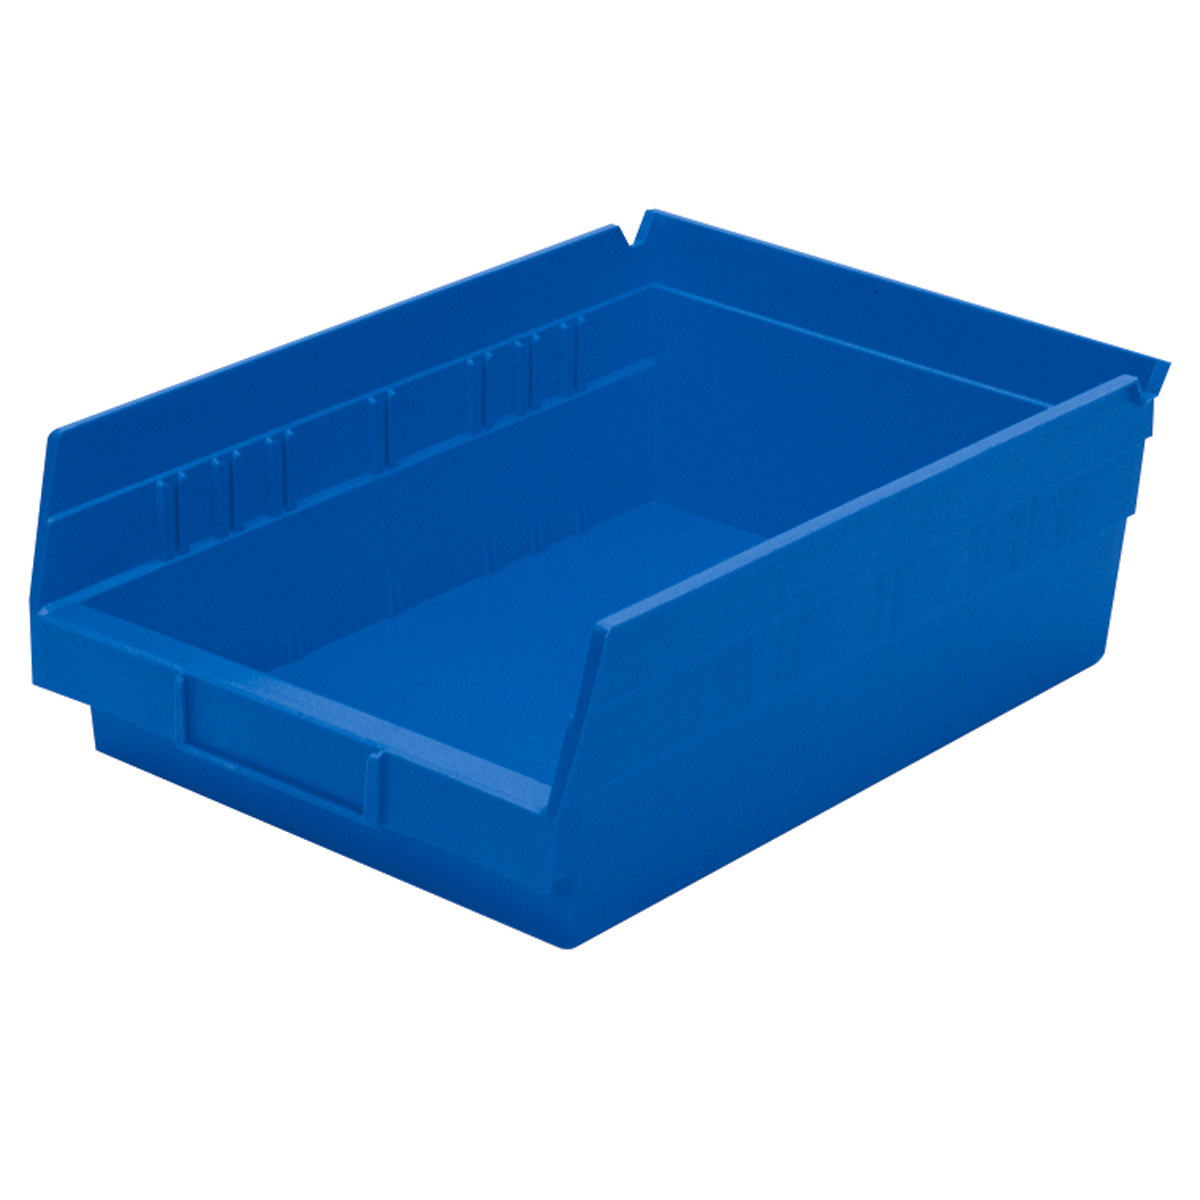 Shelf Bin 11-5/8 x 8-3/8 x 4, Blue (30150BLUE).  This item sold in carton quantities of 12.